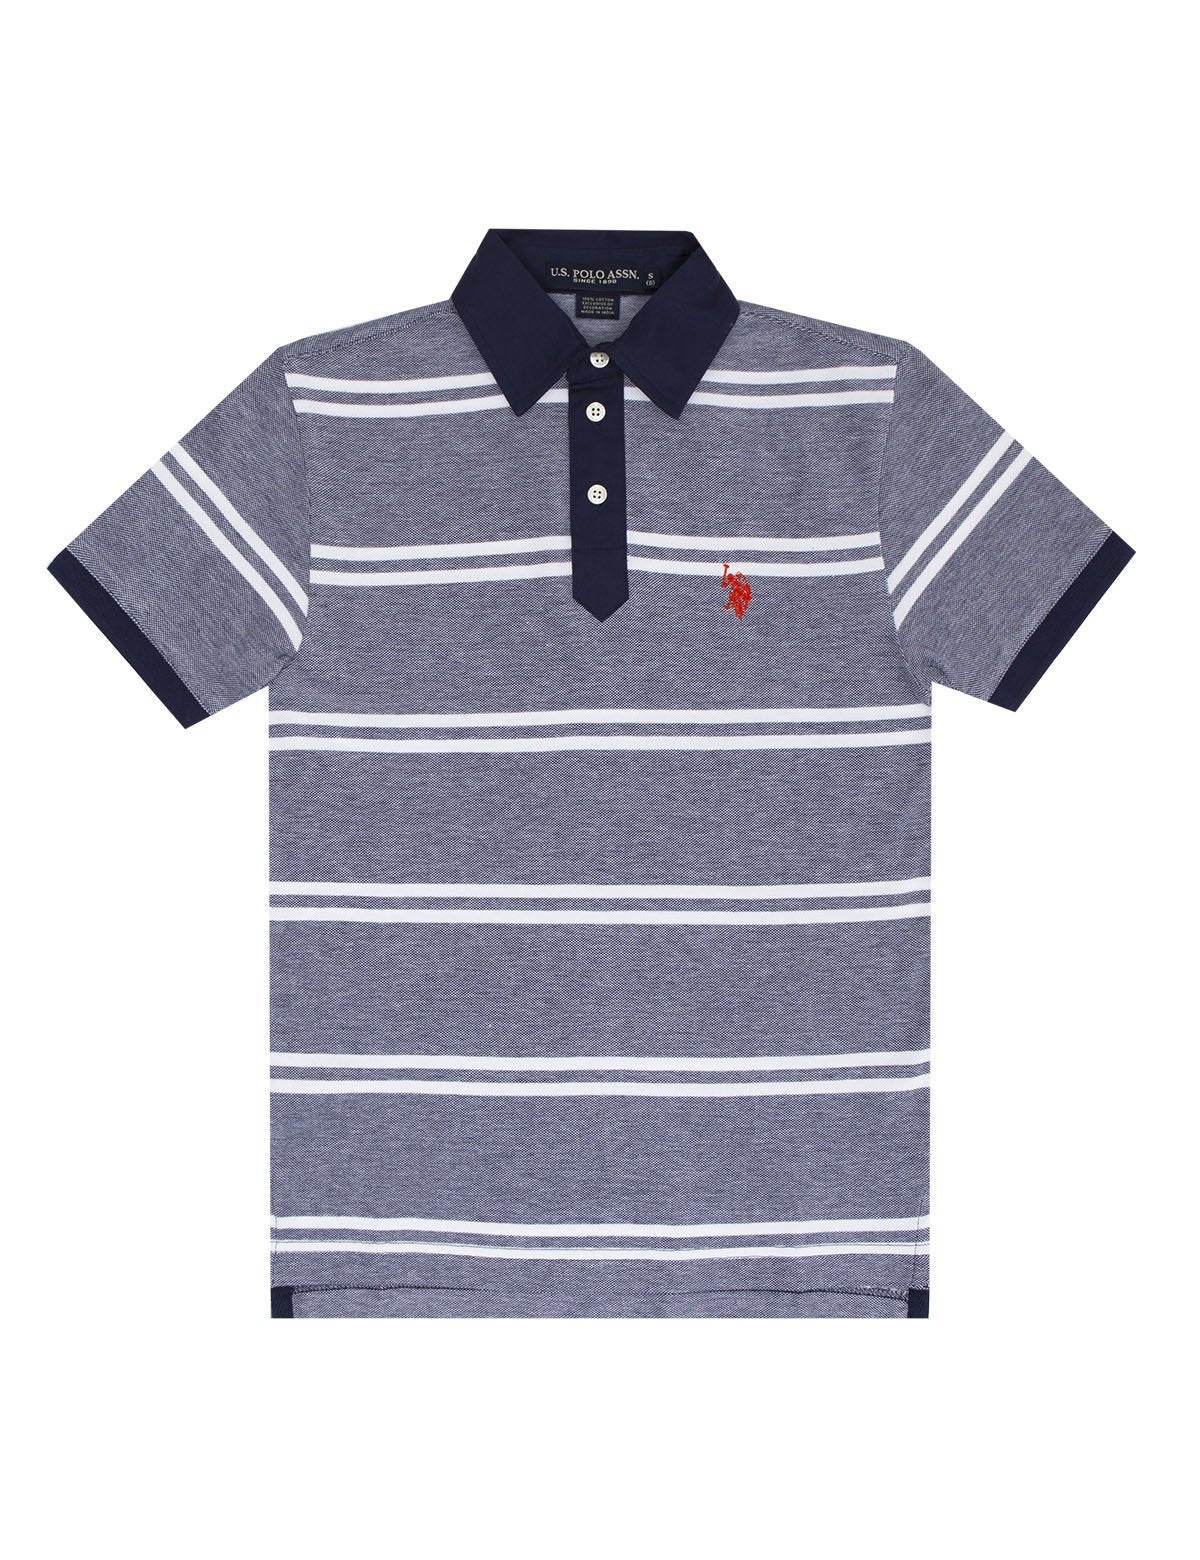 Striped Birdseye Polo Shirt